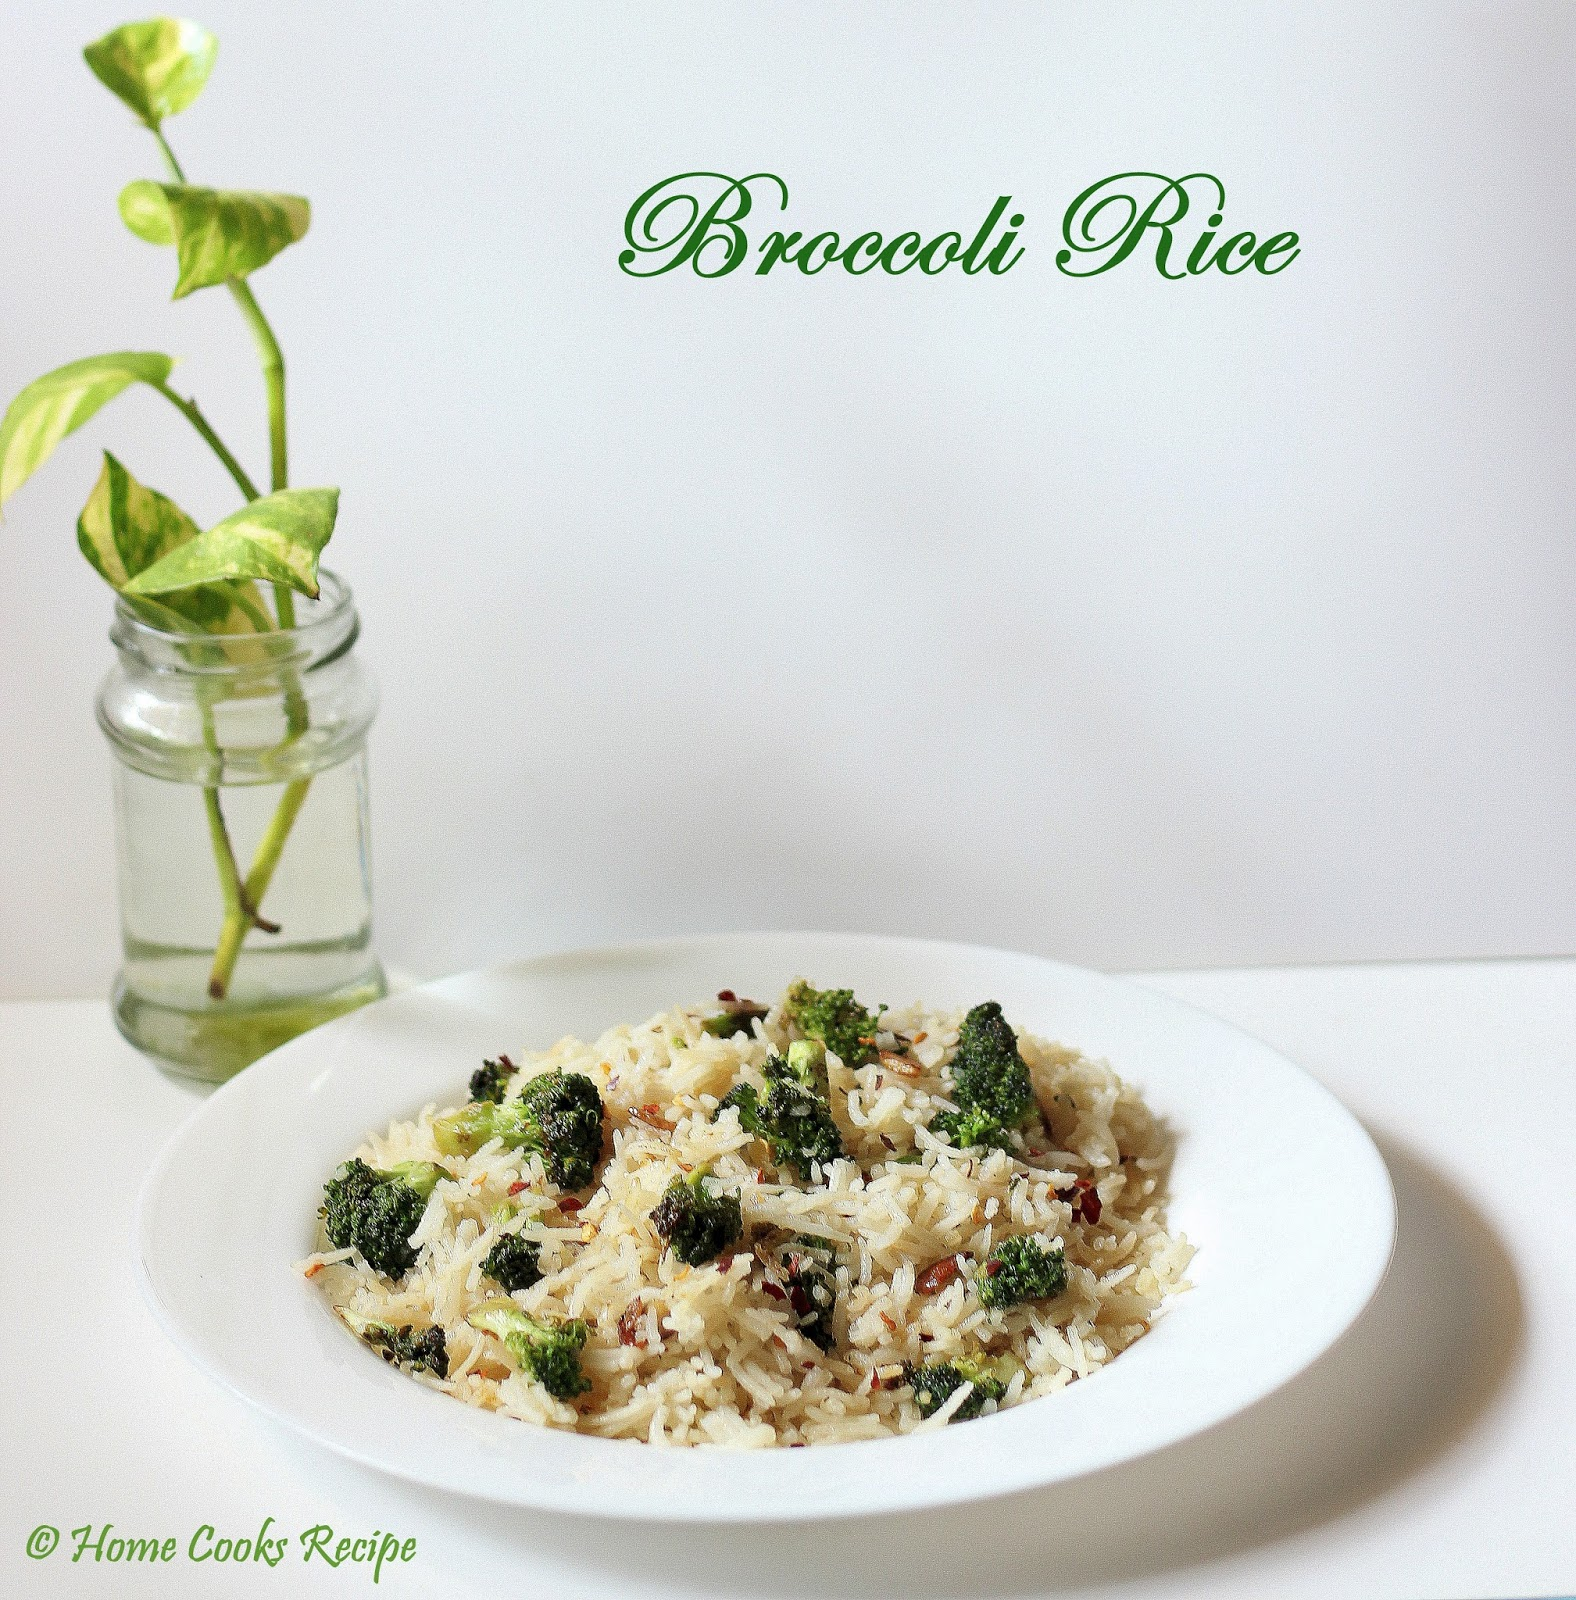 Broccoli Rice for kids lunchbox | Home Cooks Recipe